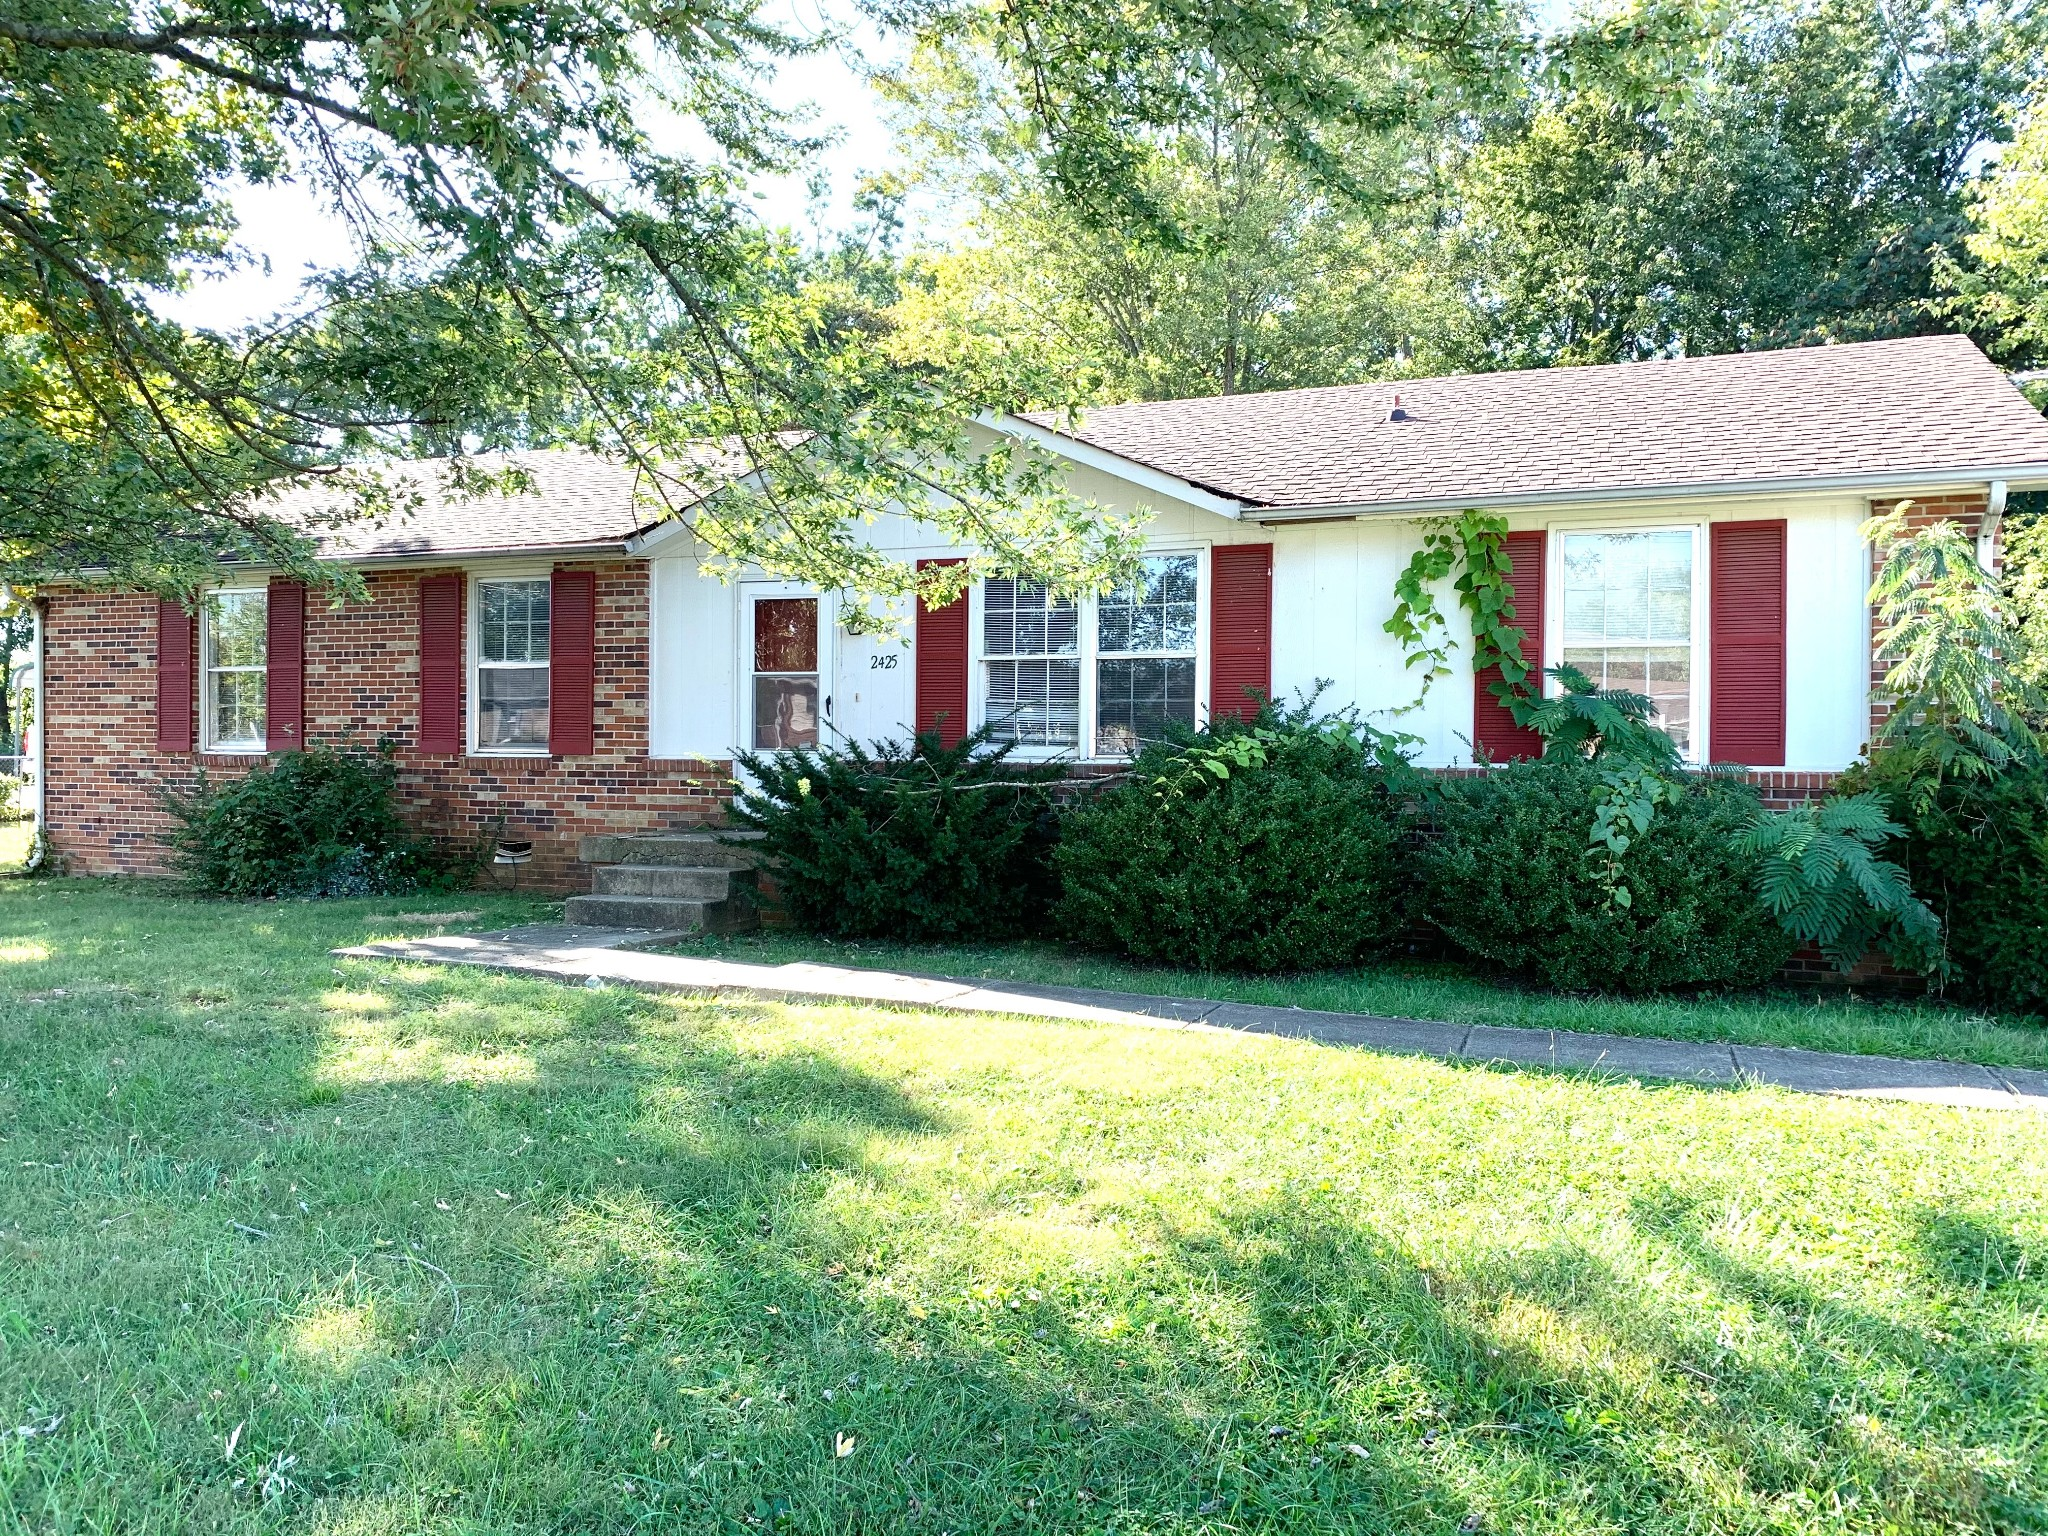 2425 Pendleton Dr Property Photo - Clarksville, TN real estate listing